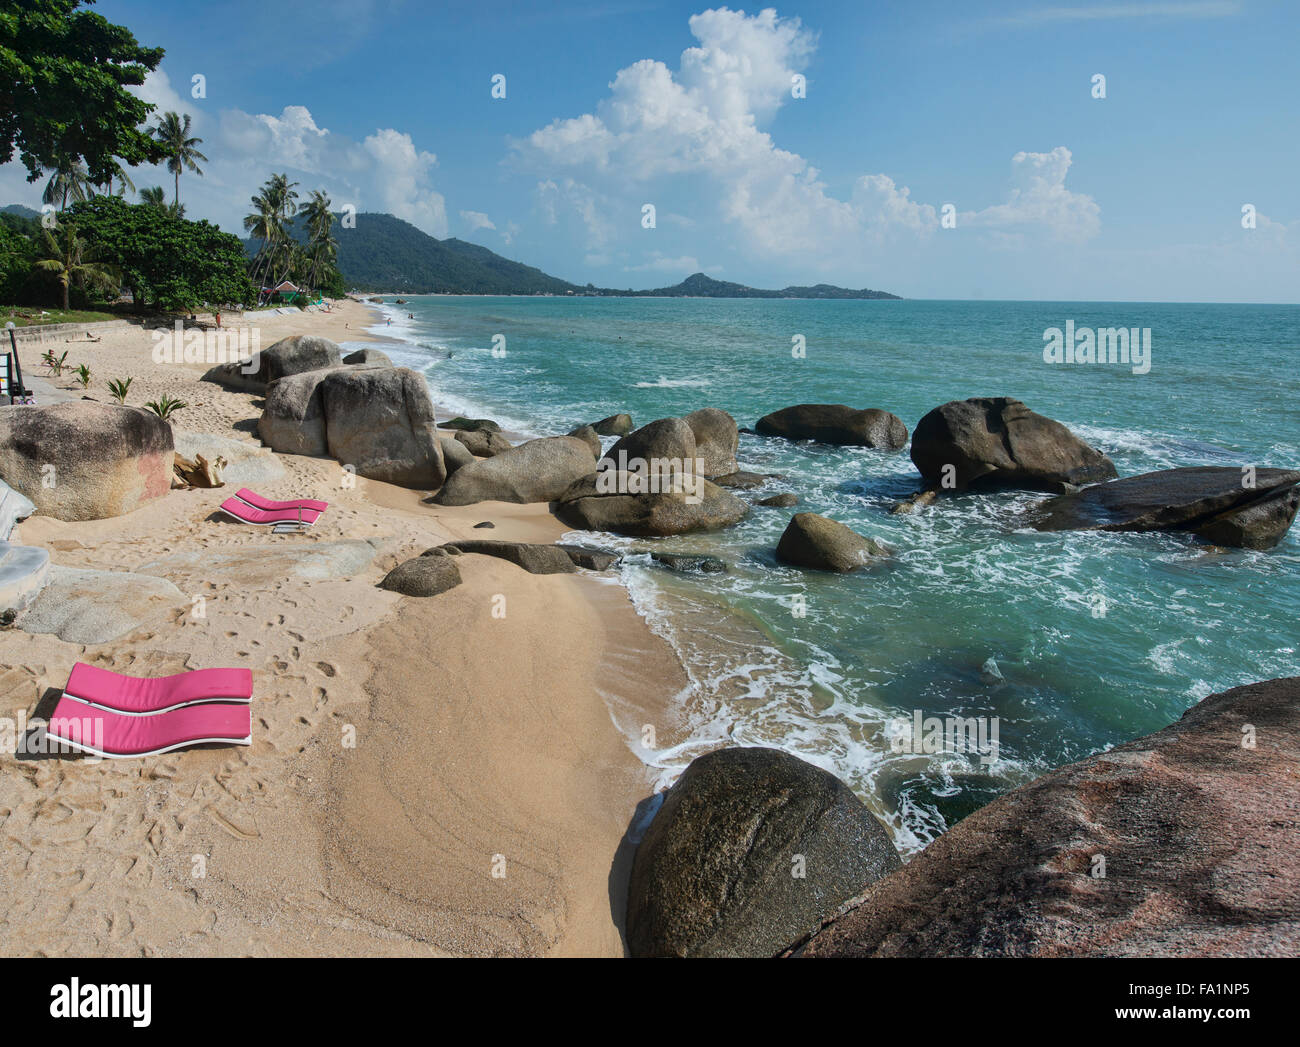 Along the beach in Lamai on Koh Samui island, Thailand - Stock Image